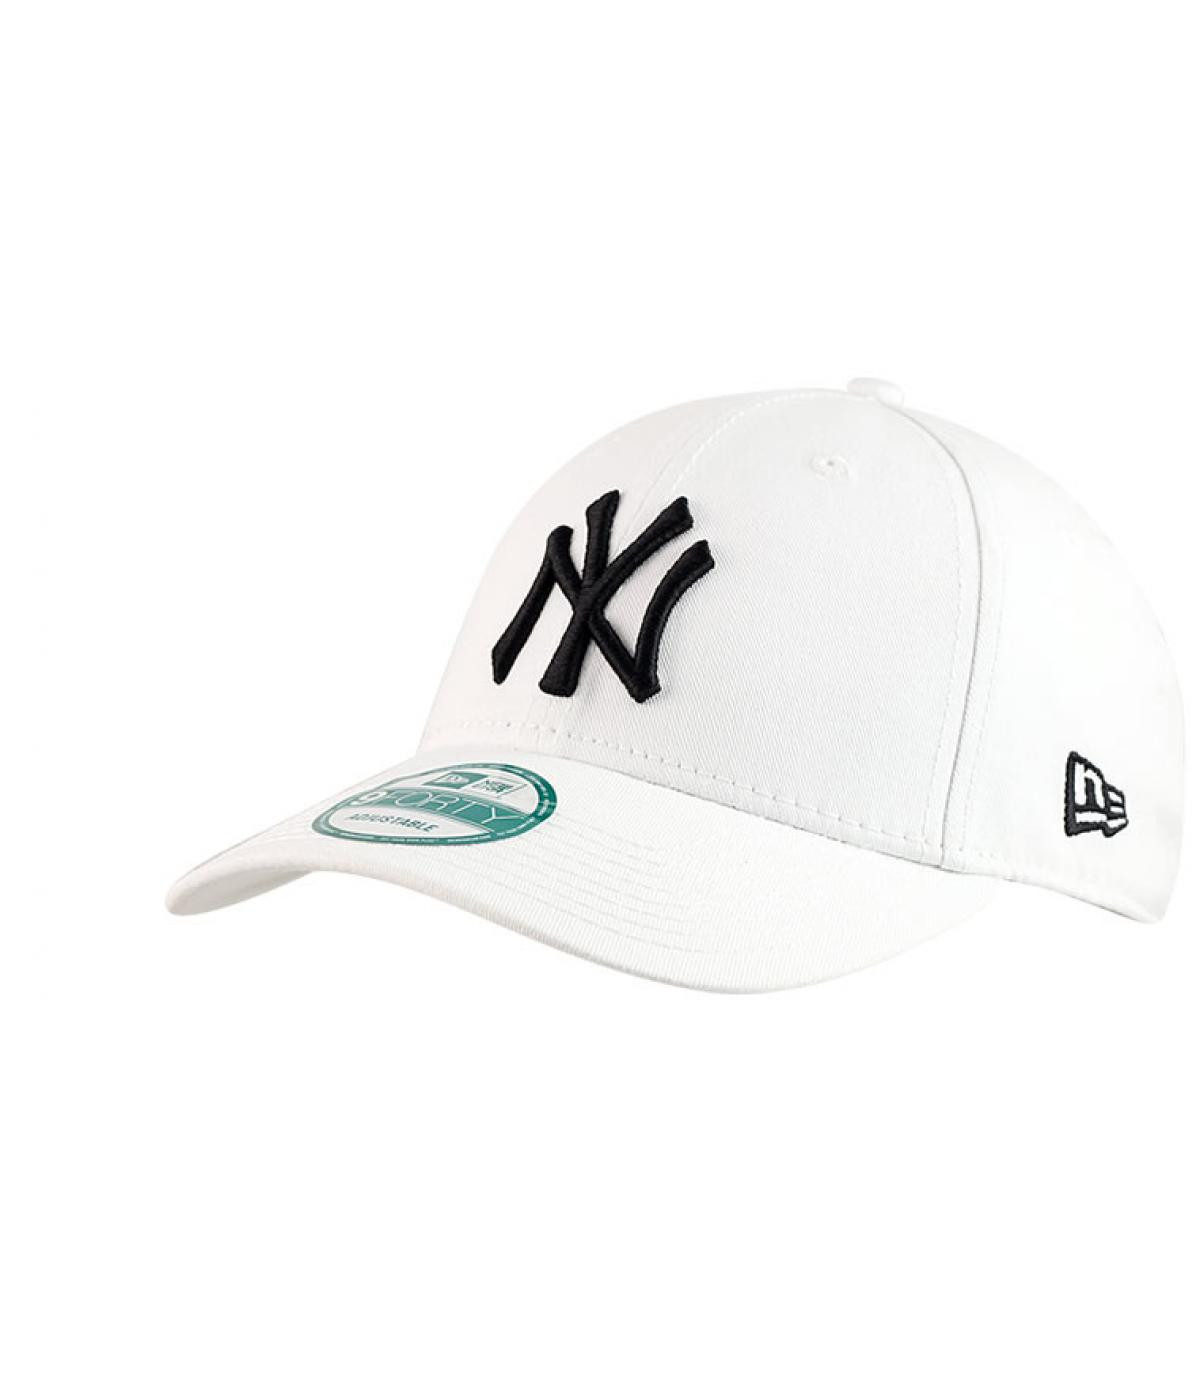 Détails White trucker NY fitted - image 3